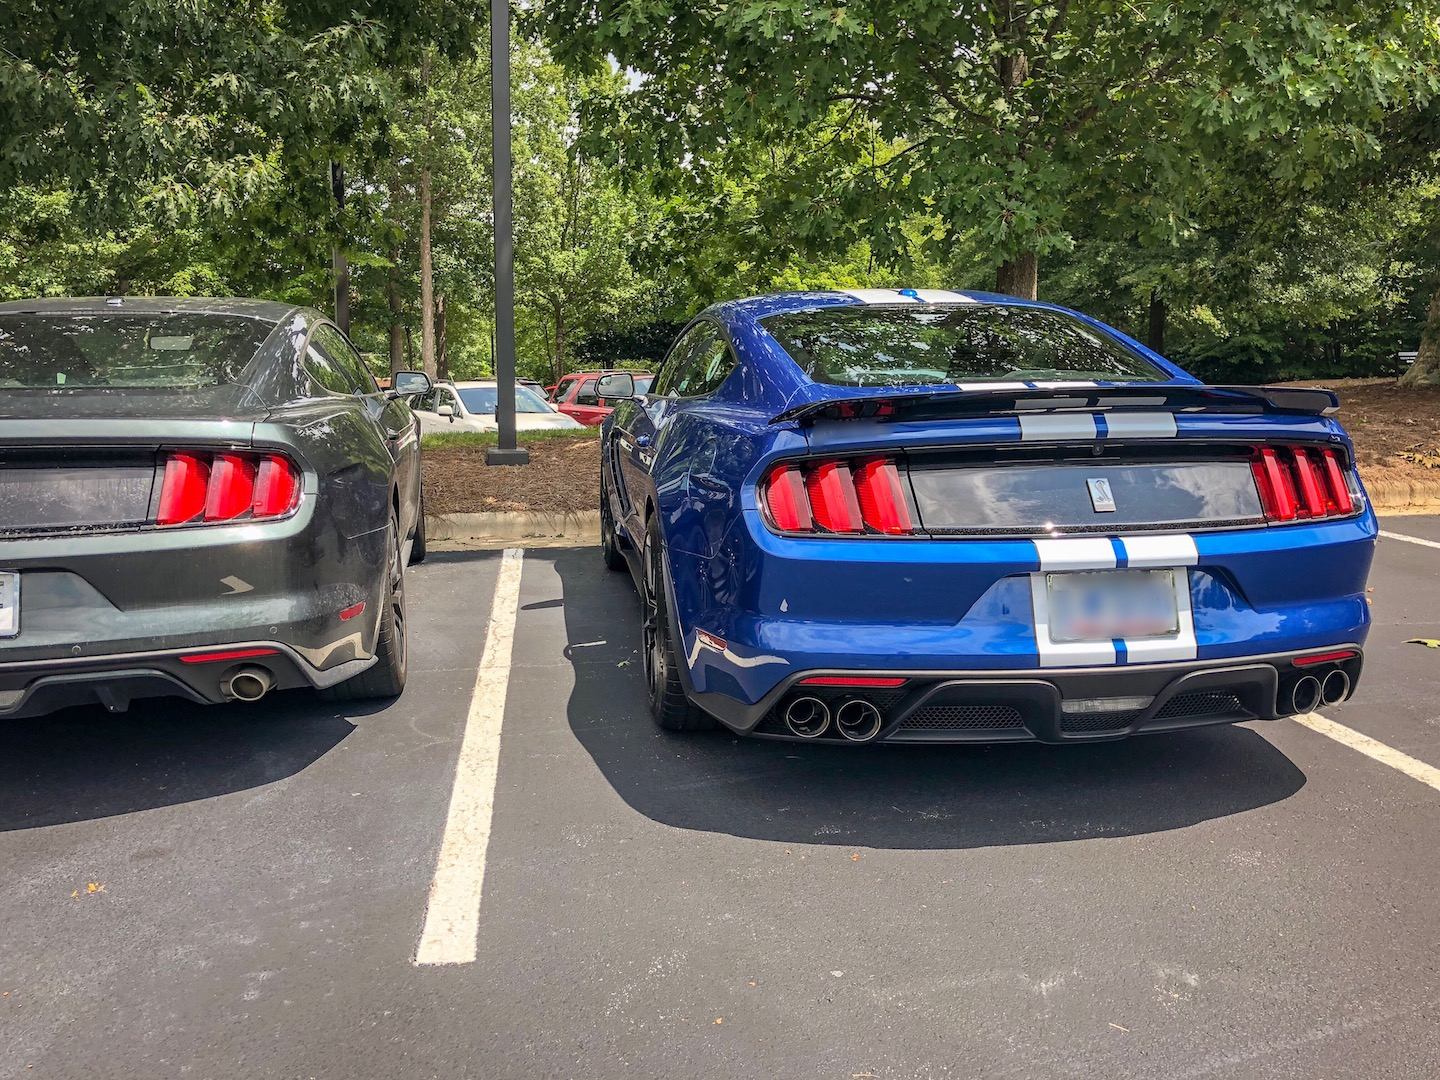 B40999B7-4481-483C-88BC-C32643EE73F62017-Ford-Mustang-Shelby-GT350